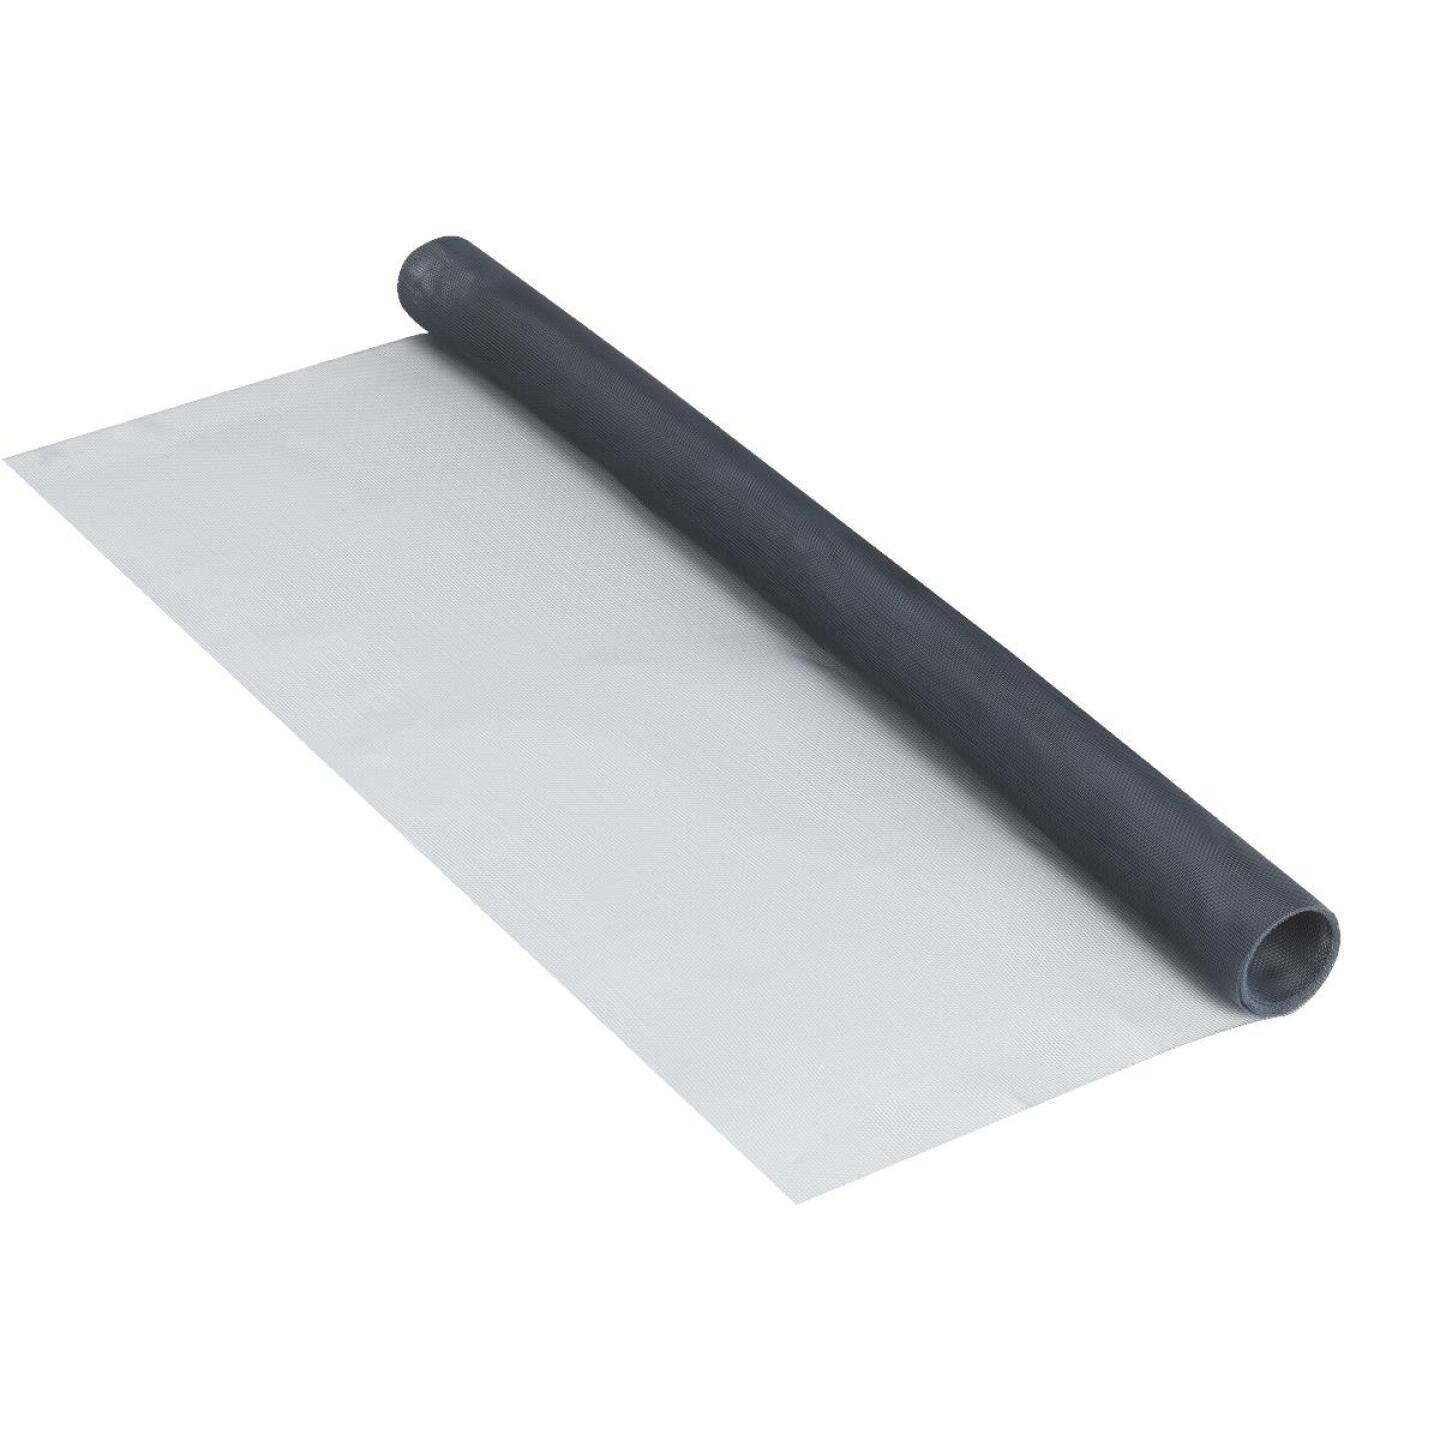 Phifer 24 In. x 84 In. Charcoal Aluminum Screen Ready Rolls Image 2